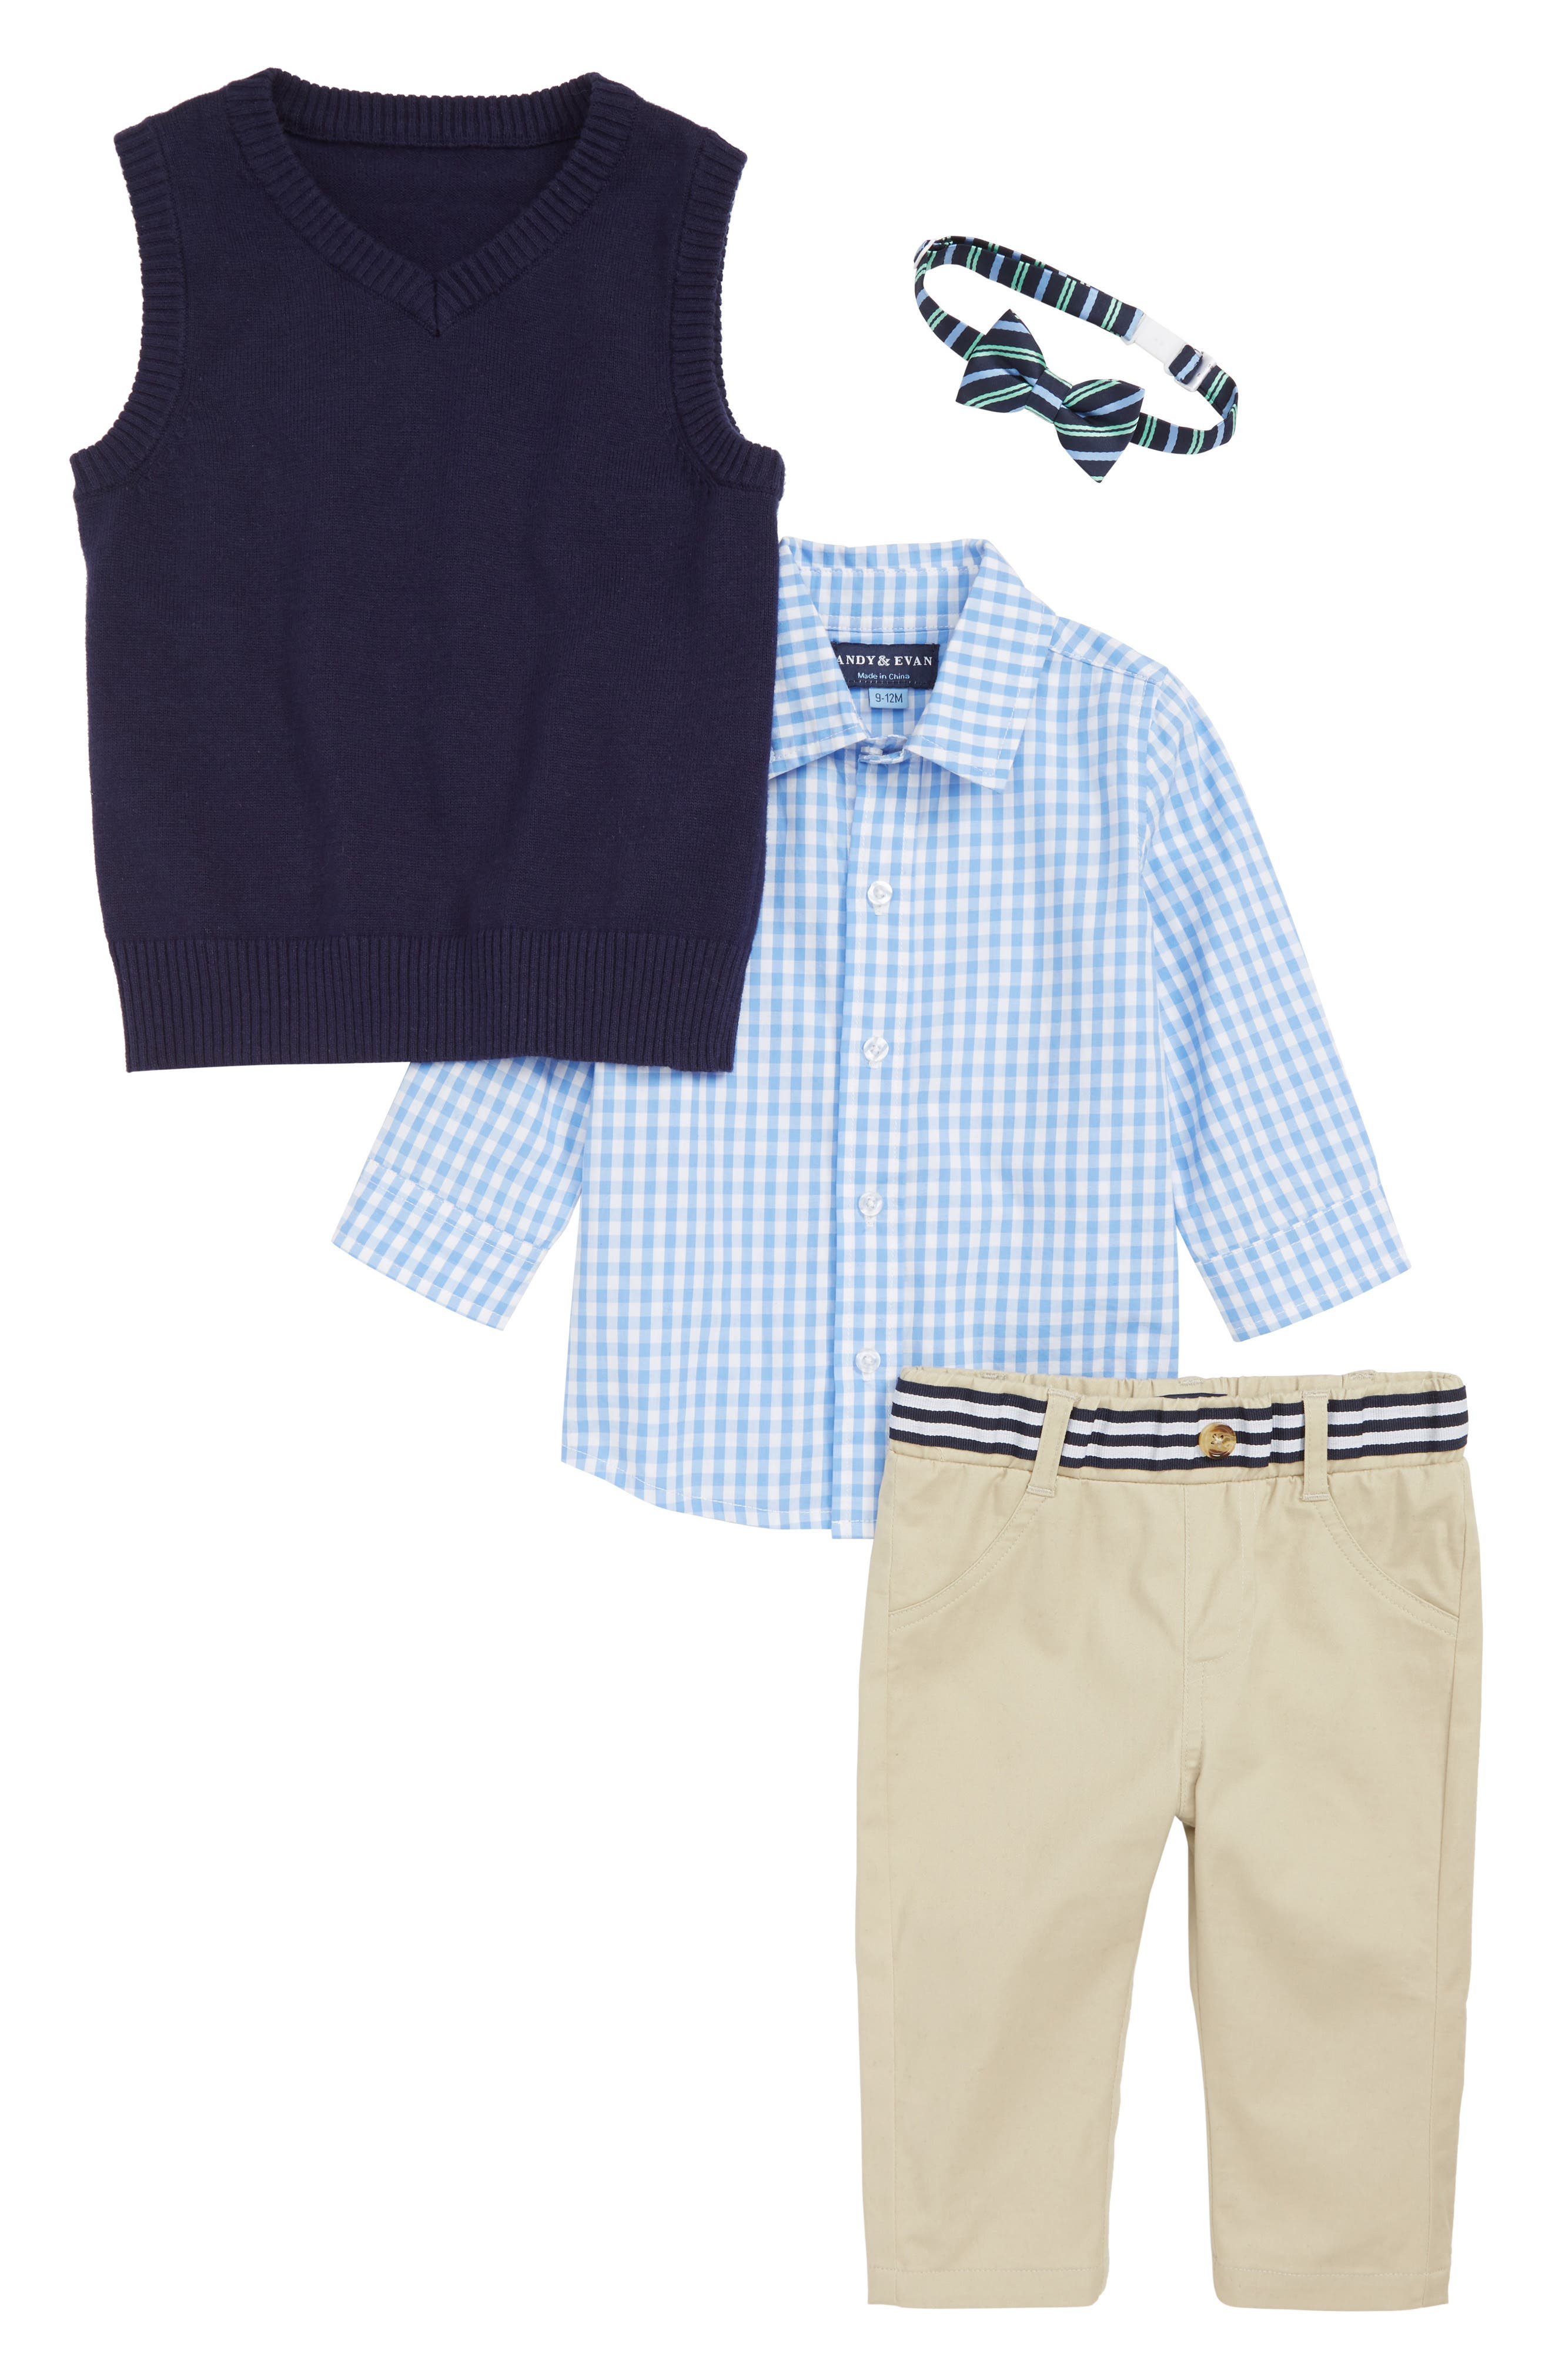 ANDY & EVAN Shirt Bow Tie, Sweater & Pants Set, Main, color, NVM-NAVY